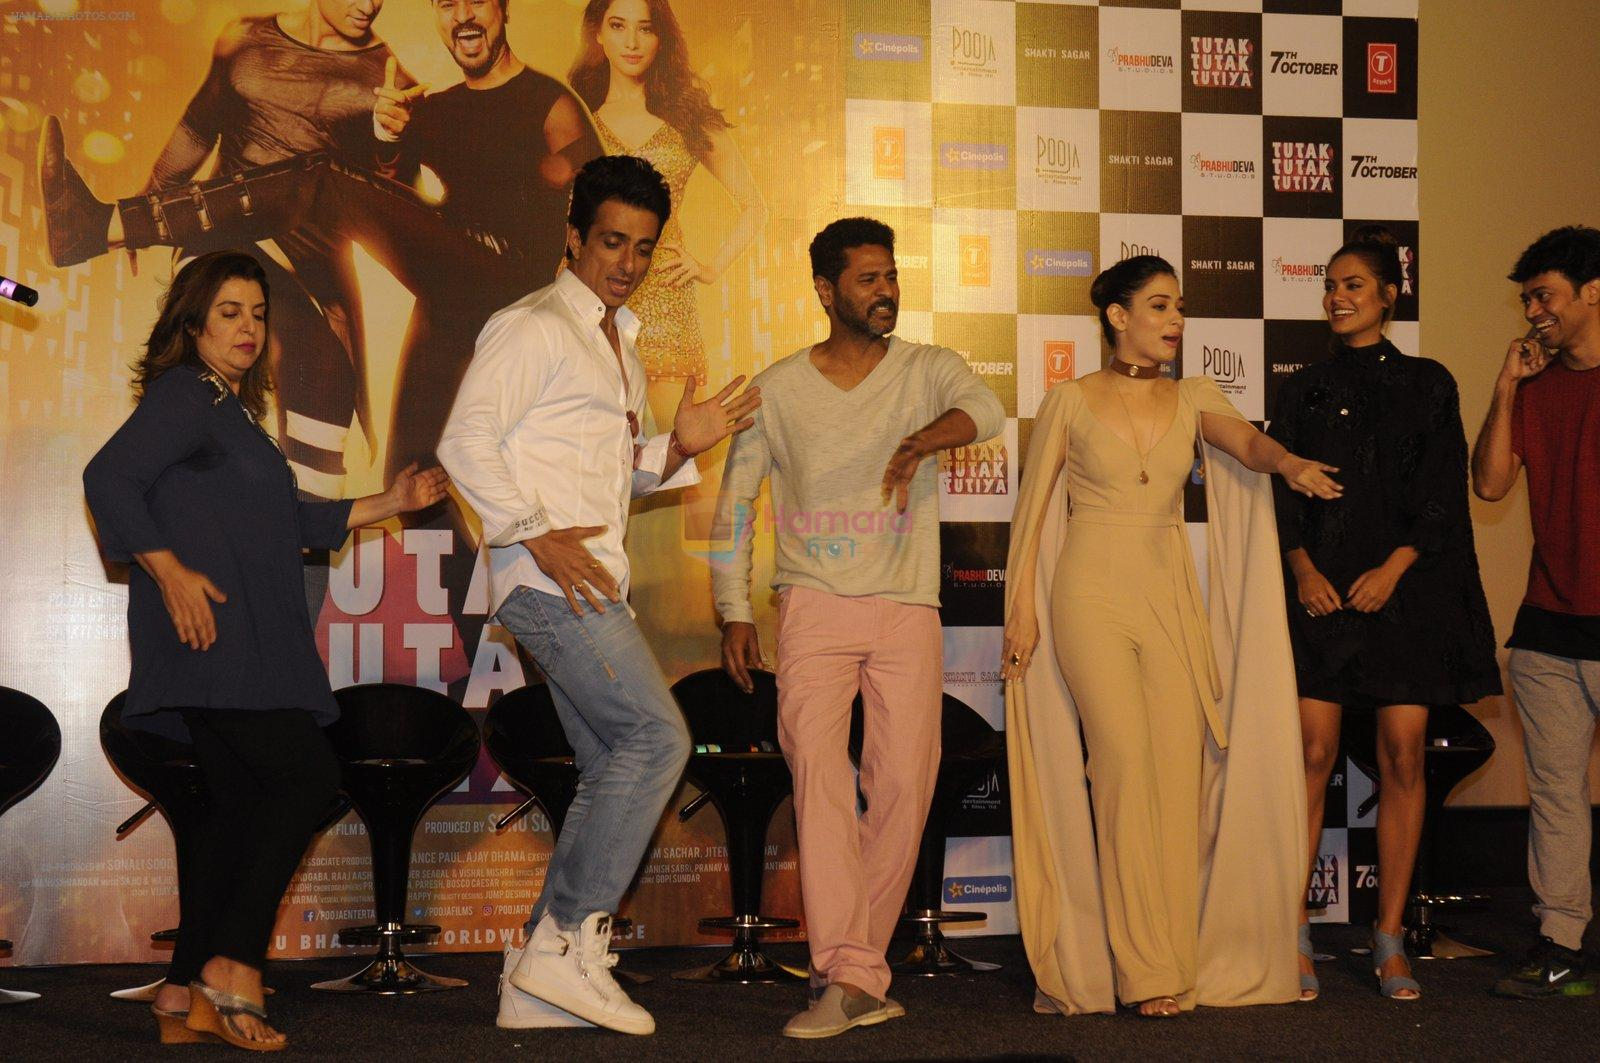 Sonu Sood, Farah Khan,Tamannaah Bhatia, Esha Gupta, Prabhu Deva launch Tutak Tutak Tutiya in Mumbai on 8th Sept 2016